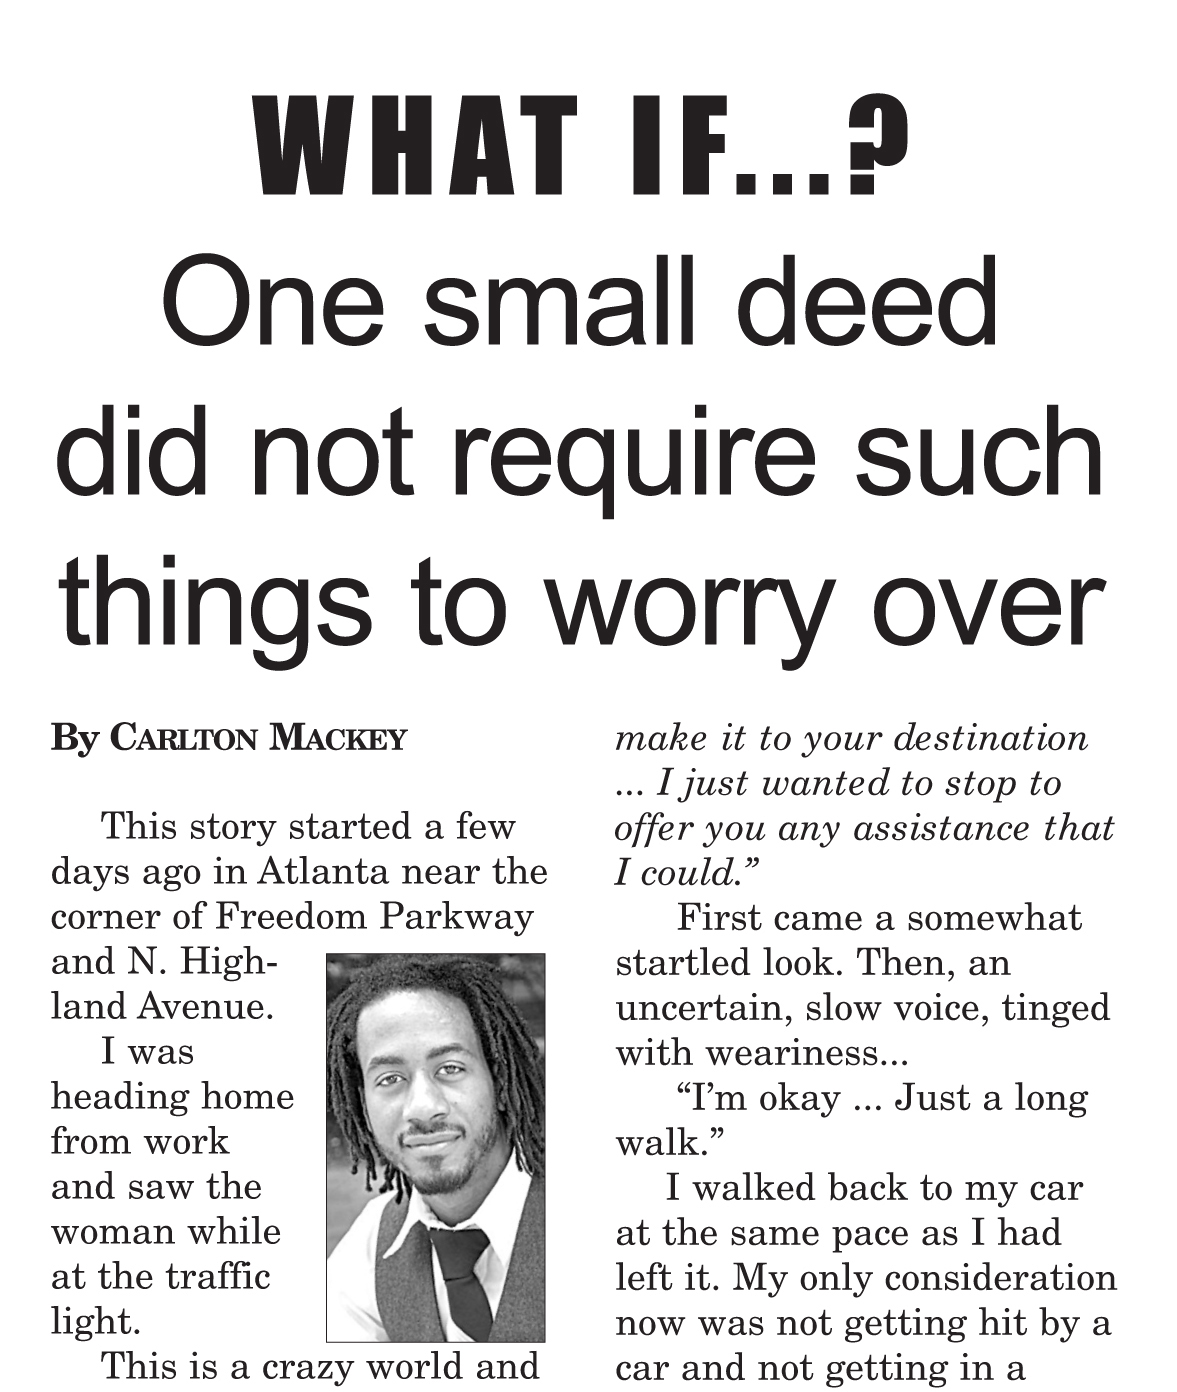 Opinion Editorial by 50 Shades of BLACK Creator feature in local newspaper